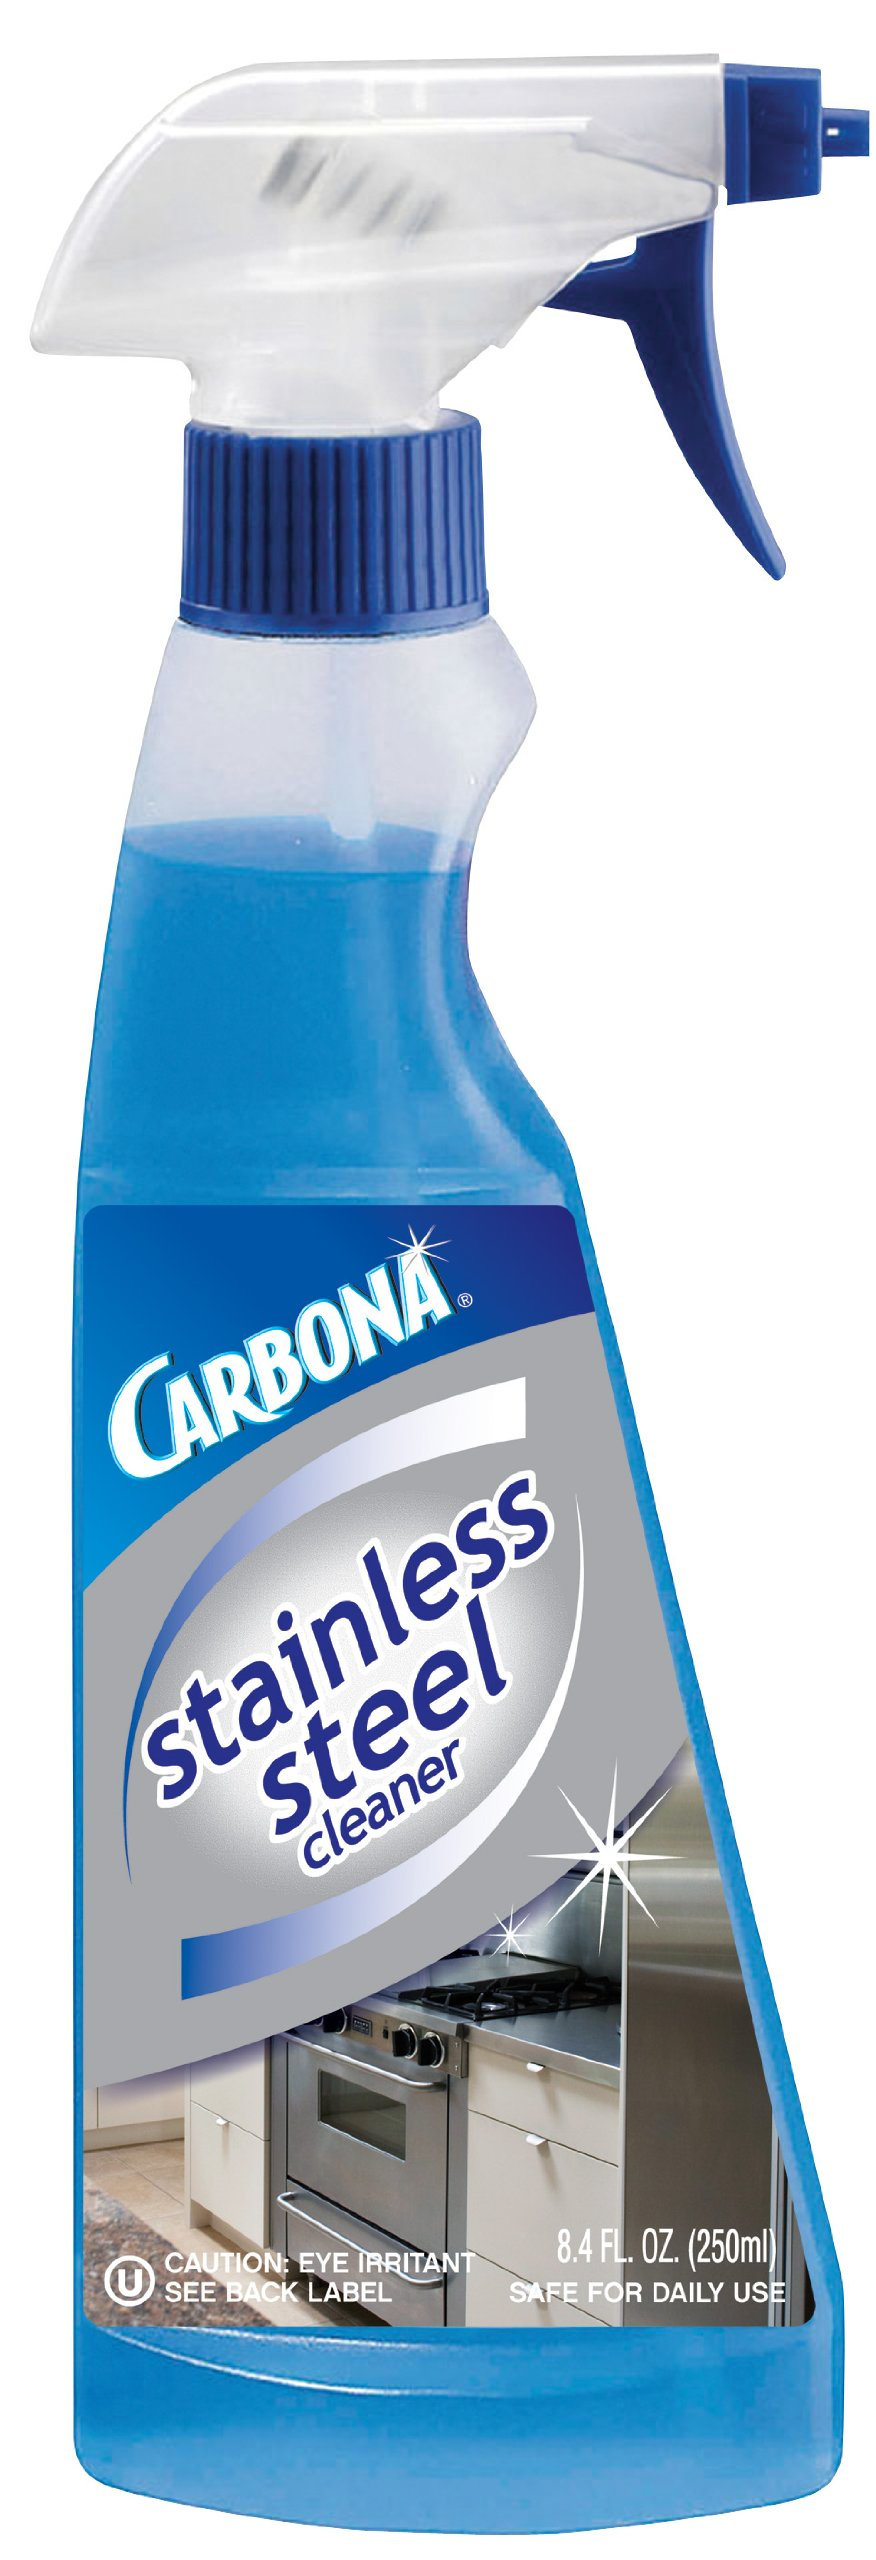 Carbona Clean It! Stainless Steel Cleaner, 8.4-Ounce Bottle (Pack of 6) by Carbona